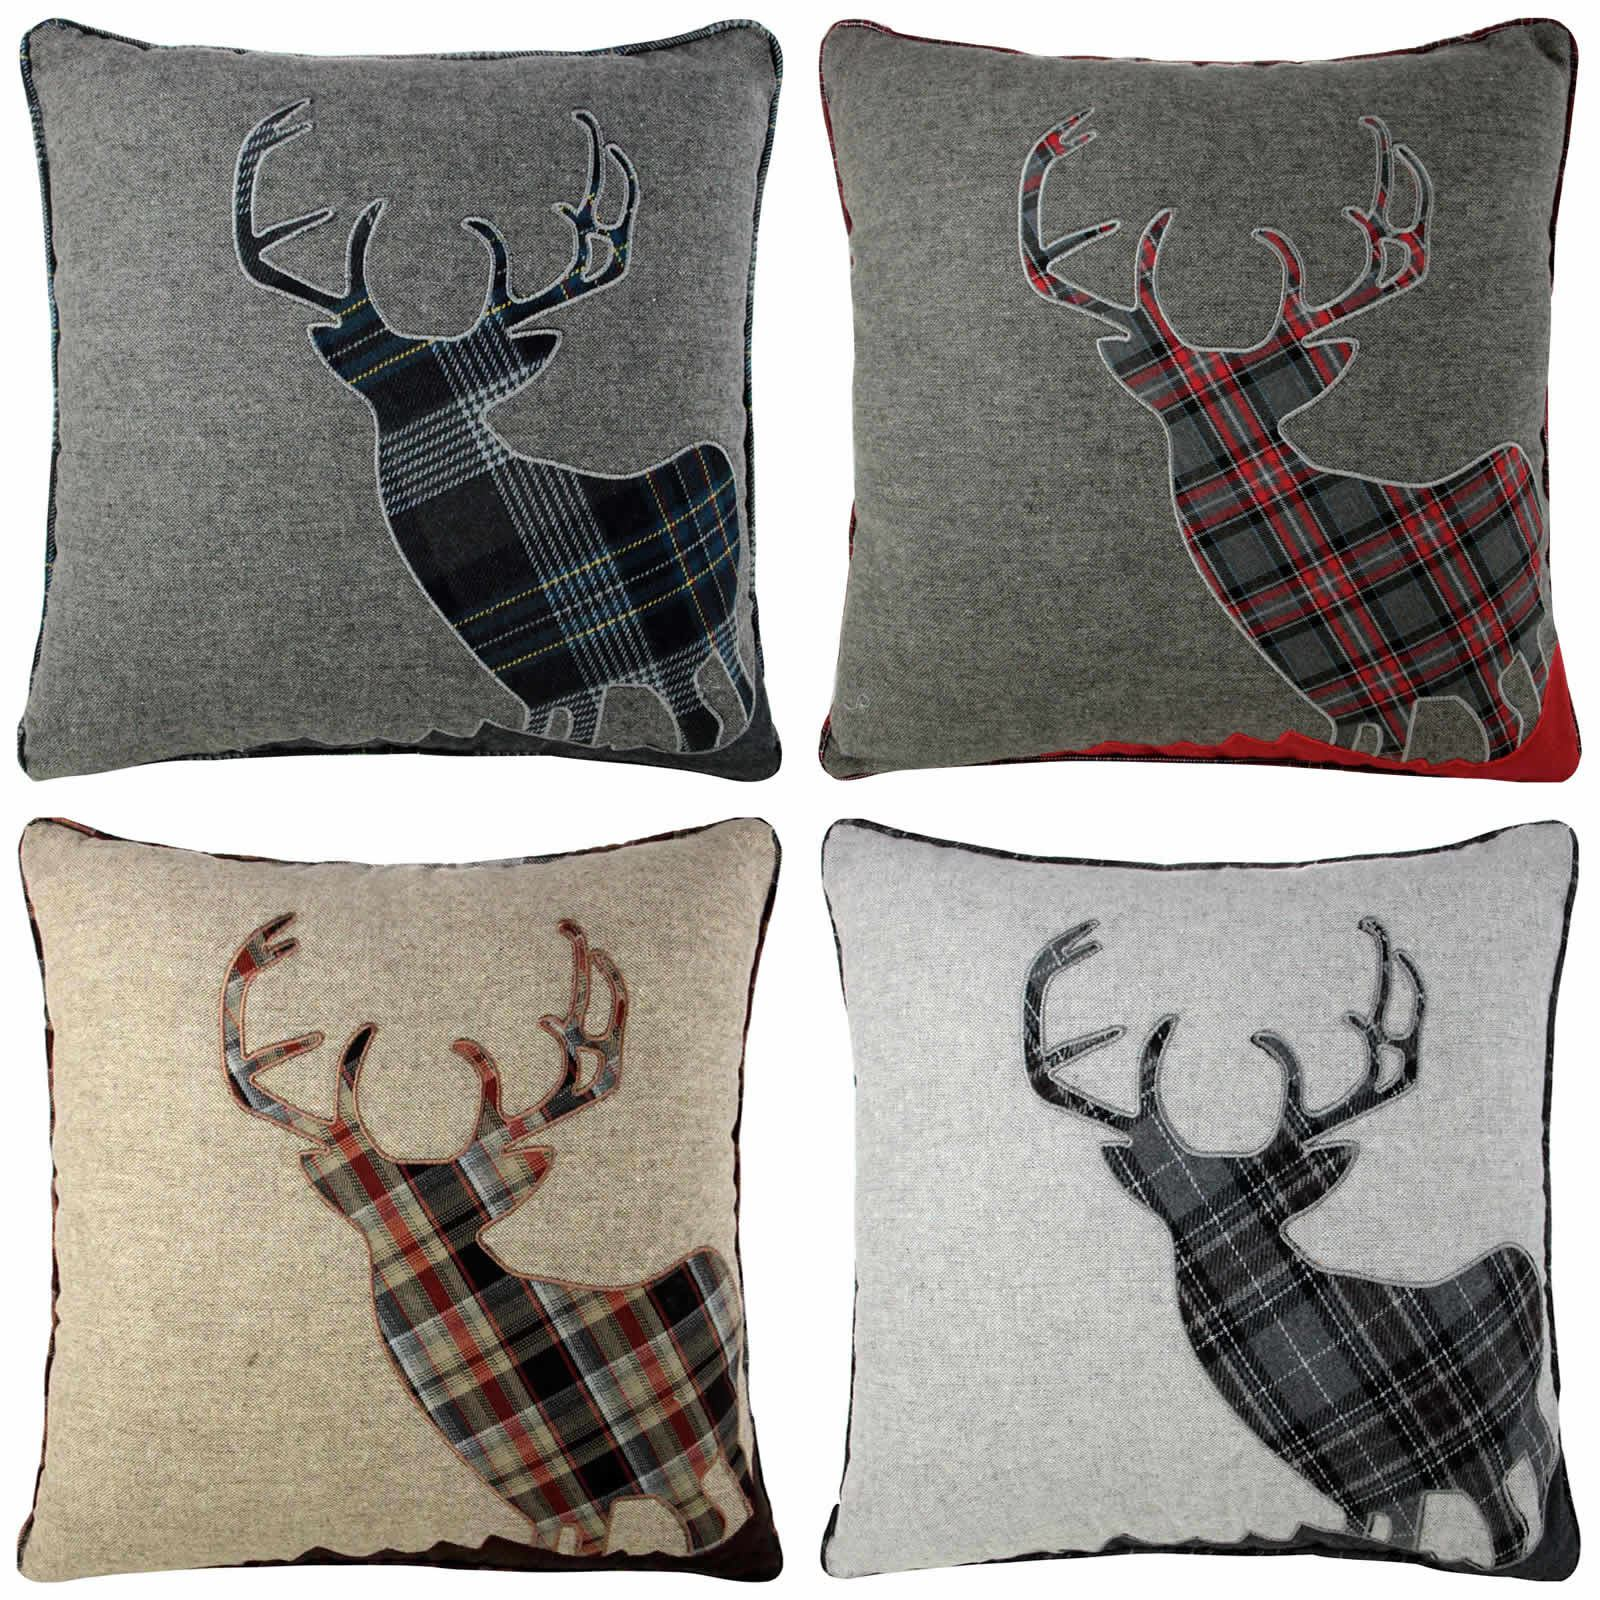 pillow enchante product pillows home throw turkish deer